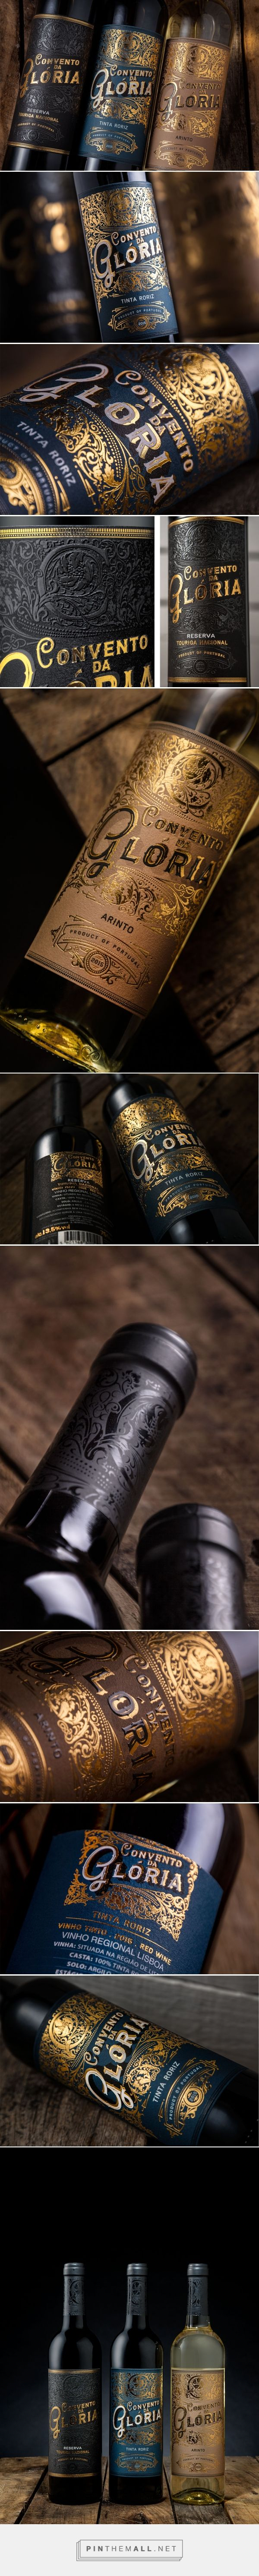 Convento da Glória wine label design by M&A Creative Agency (Portugal) - http://www.packagingoftheworld.com/2016/07/convento-da-gloria.html... #GraphicDesign #PackagingDesign #Design #Graphic